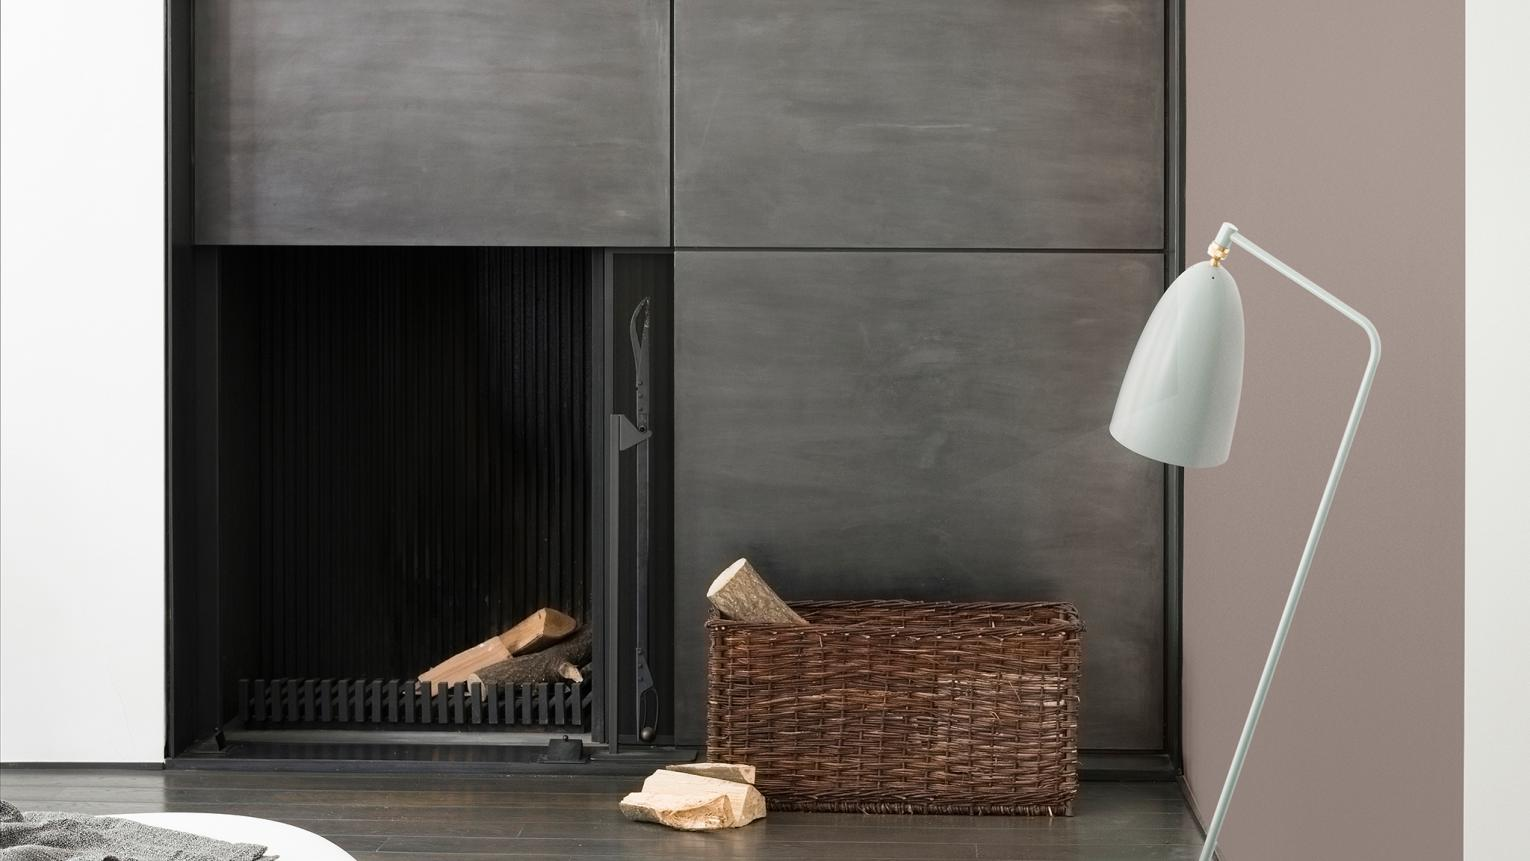 Enhance a minimalist metal fireplace with warm, rich neutrals like dove grey and charcoal.